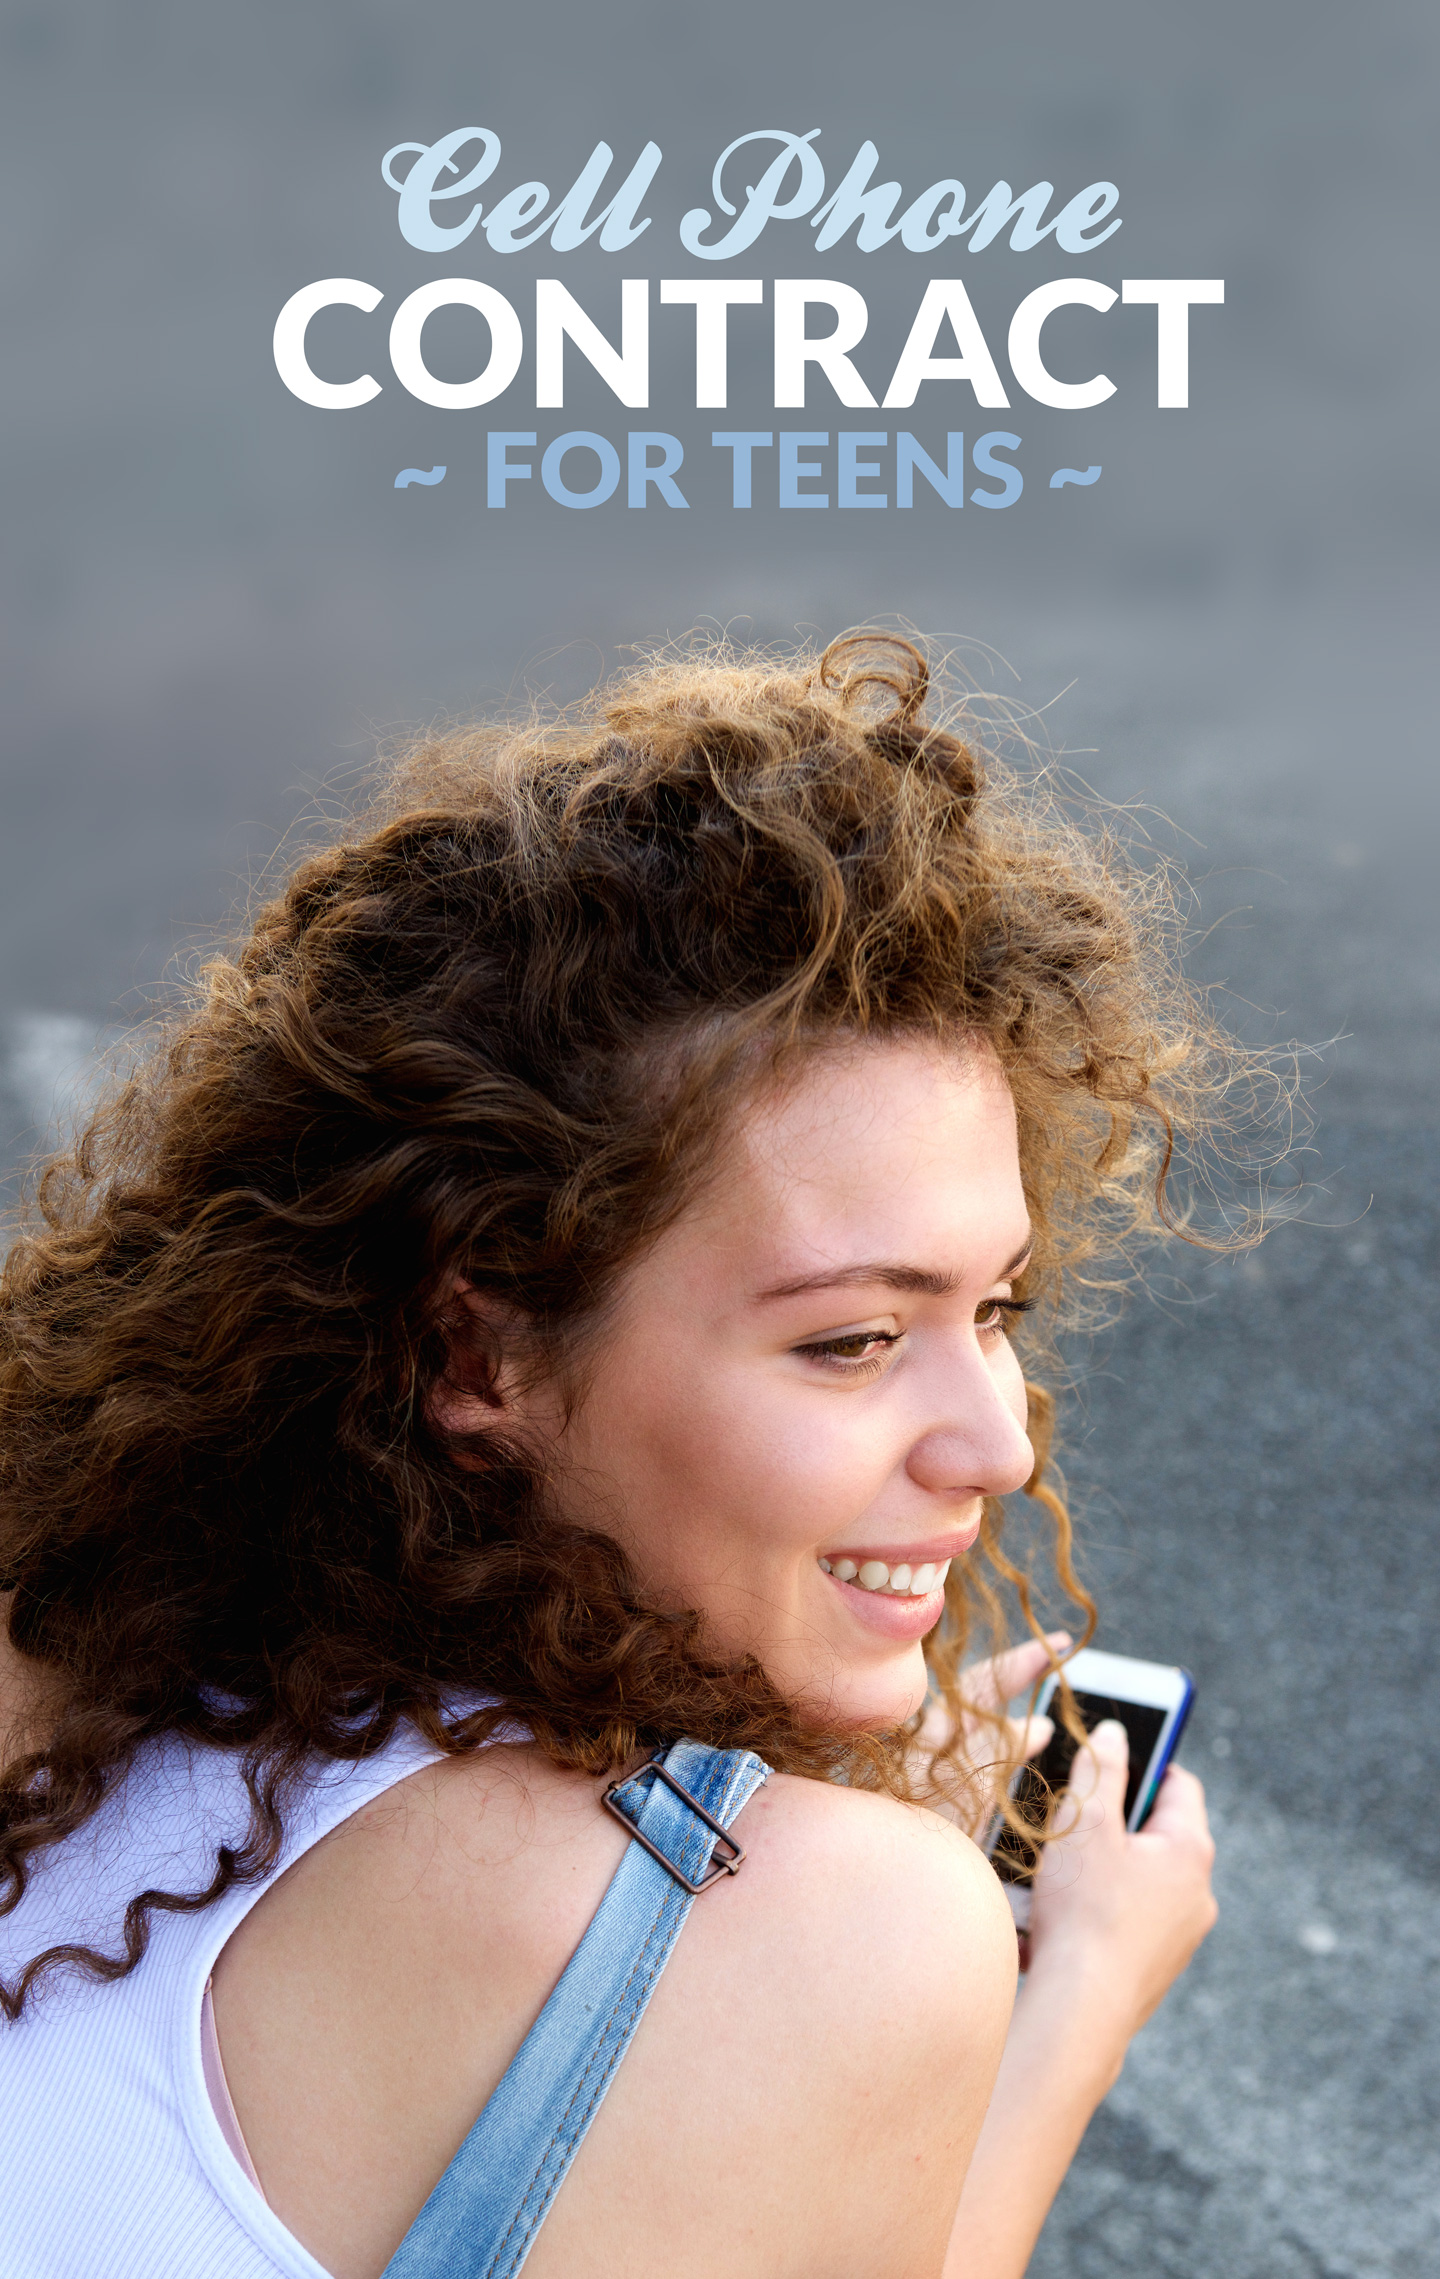 Cell Phone Contract For Teens - Template for Smartphone Agreement